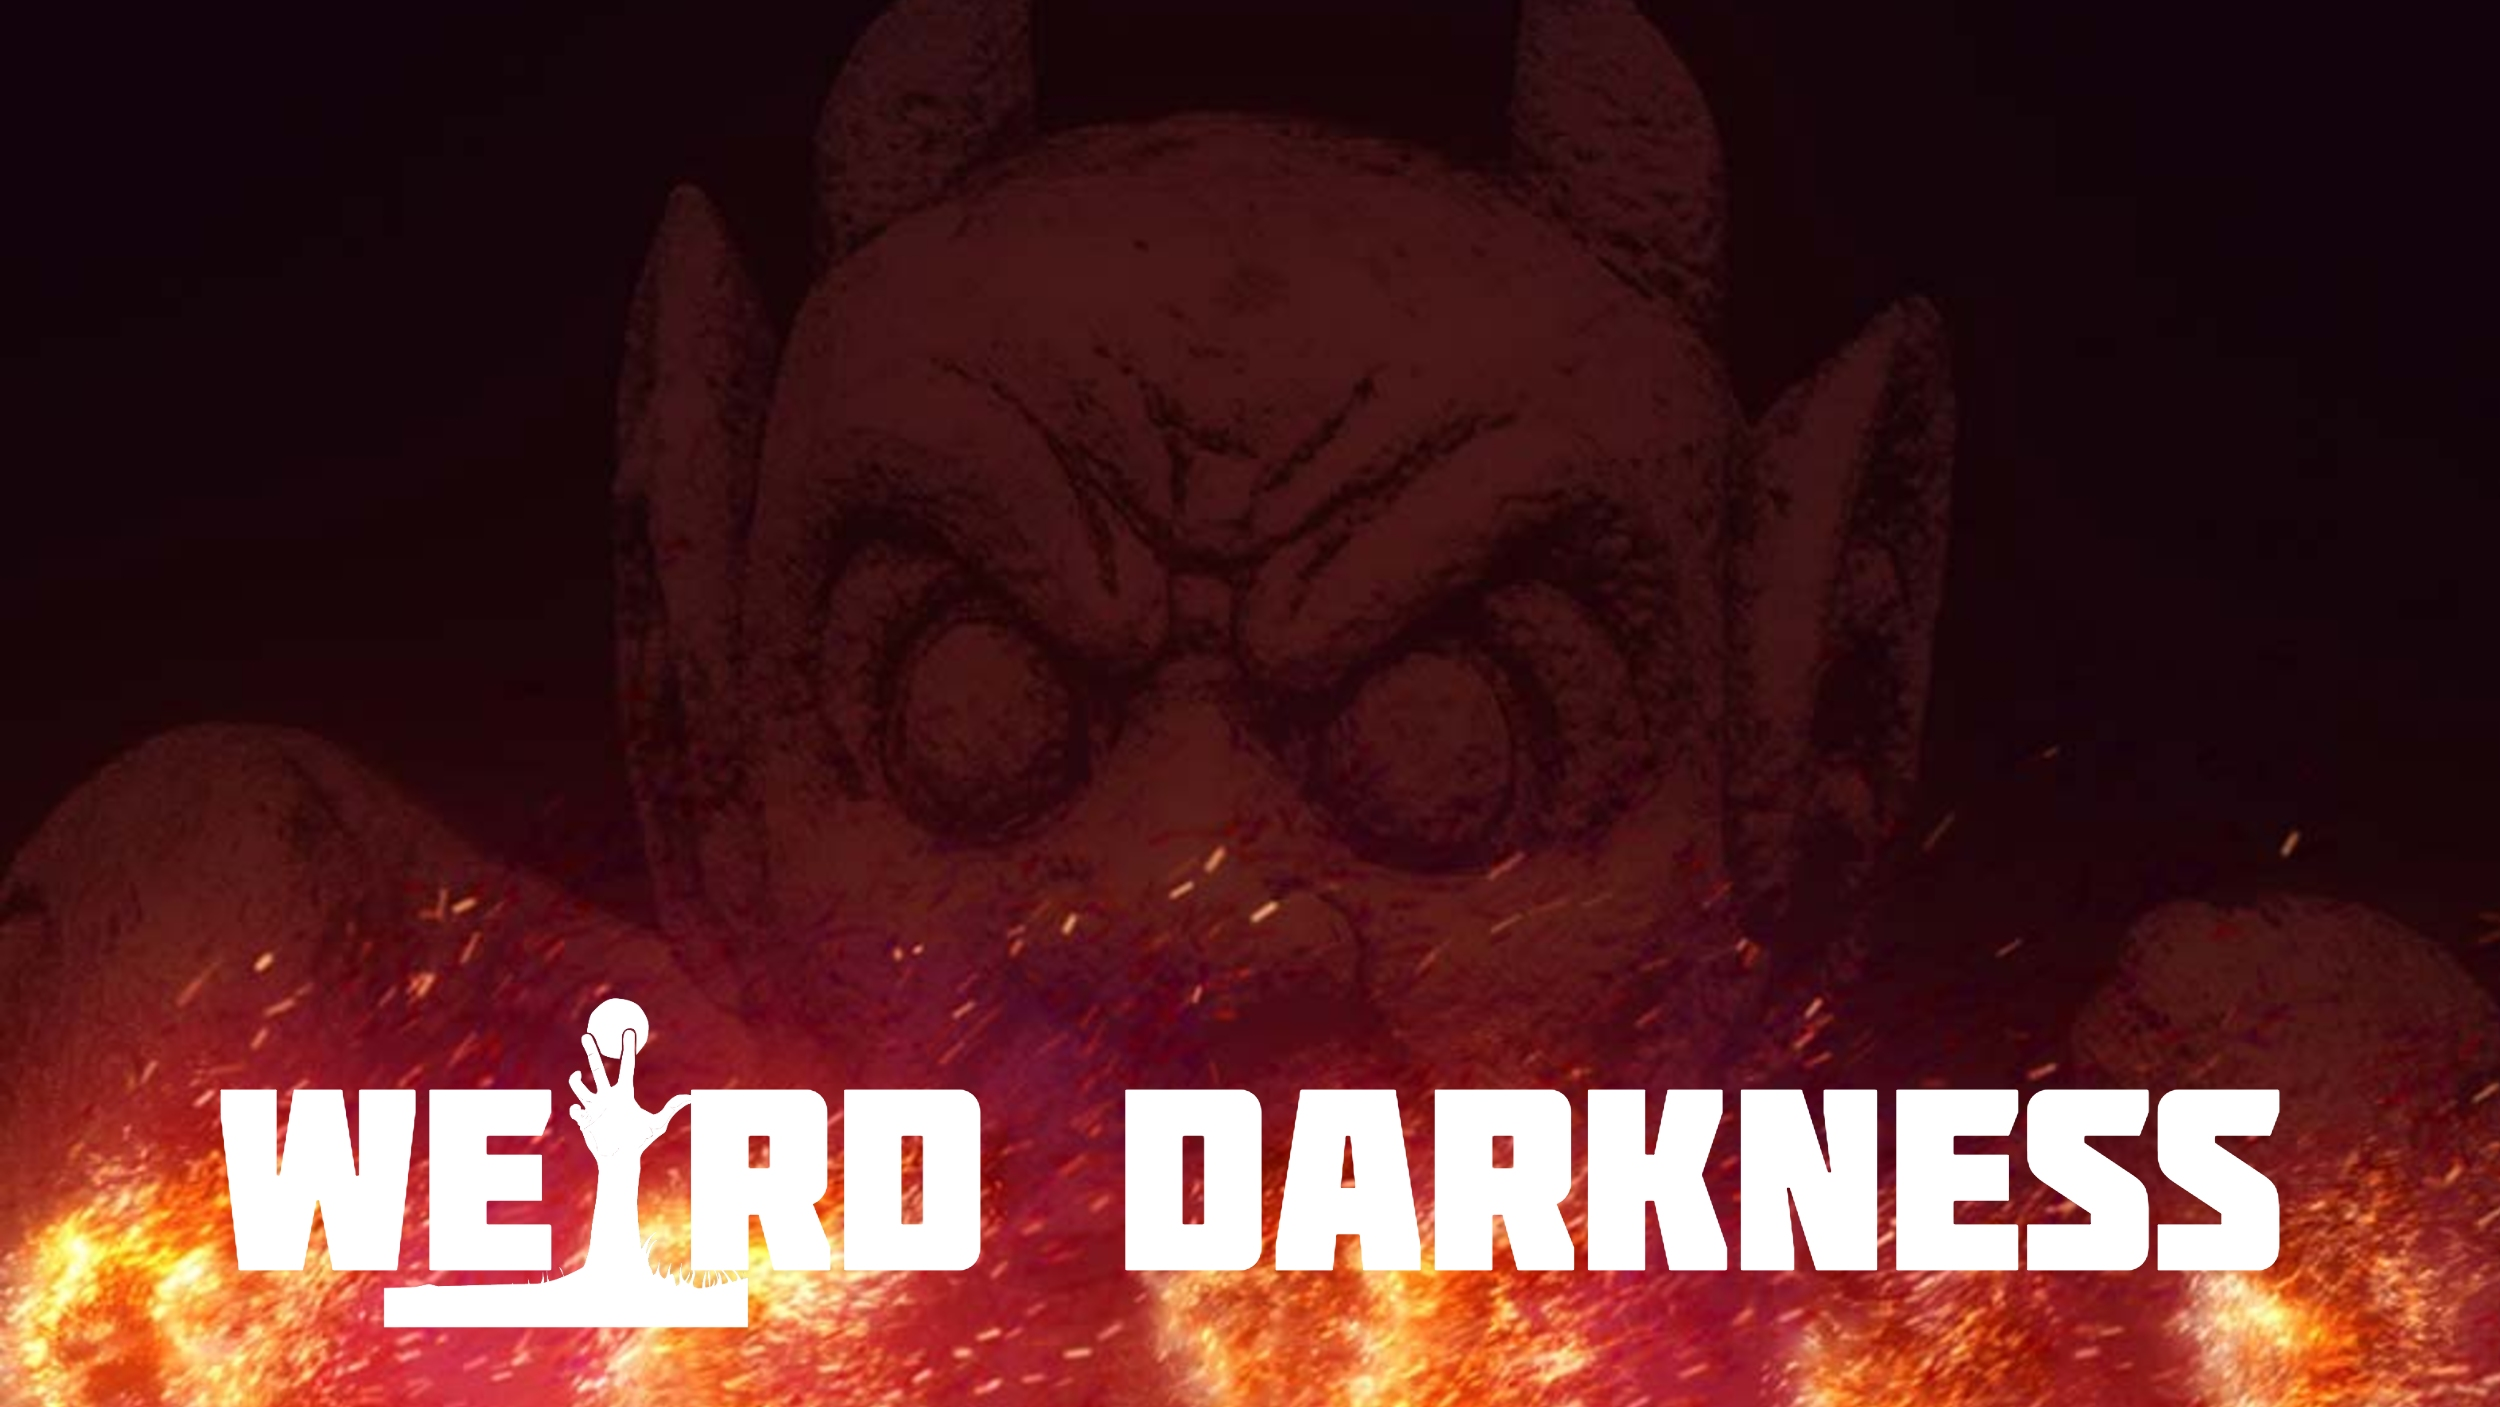 """""""DIABOLICAL DEALINGS WITH THE DEVIL"""" 10 True Encounters With Satan Himself! #WeirdDarkness"""